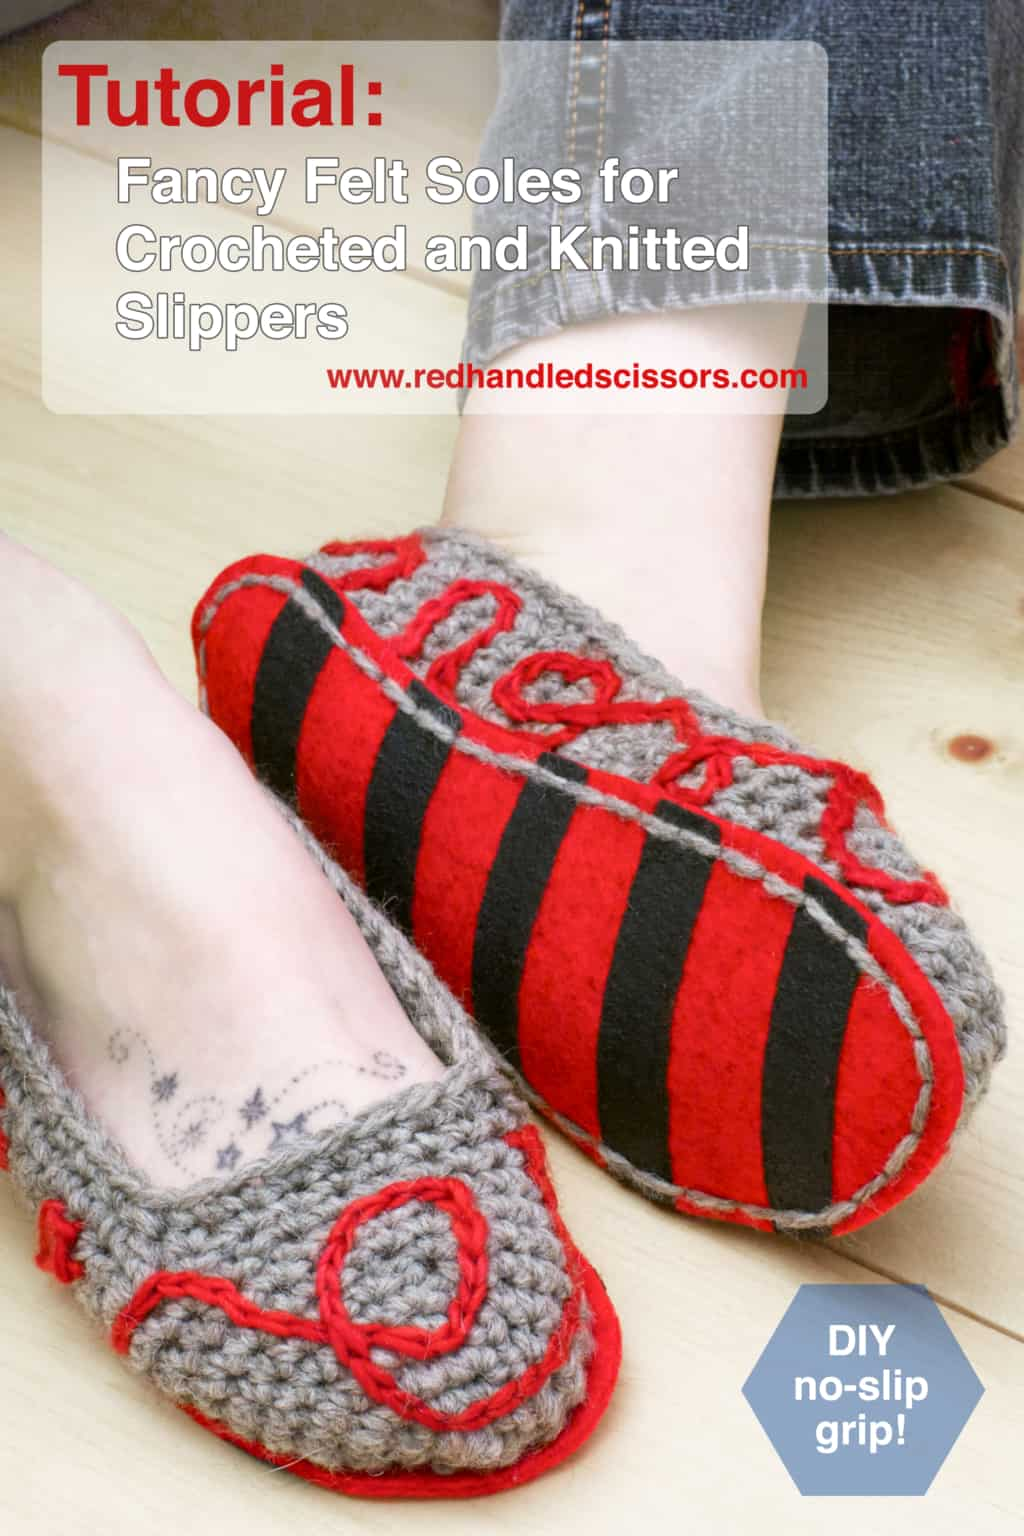 Fancy felt soles for crocheted slippers